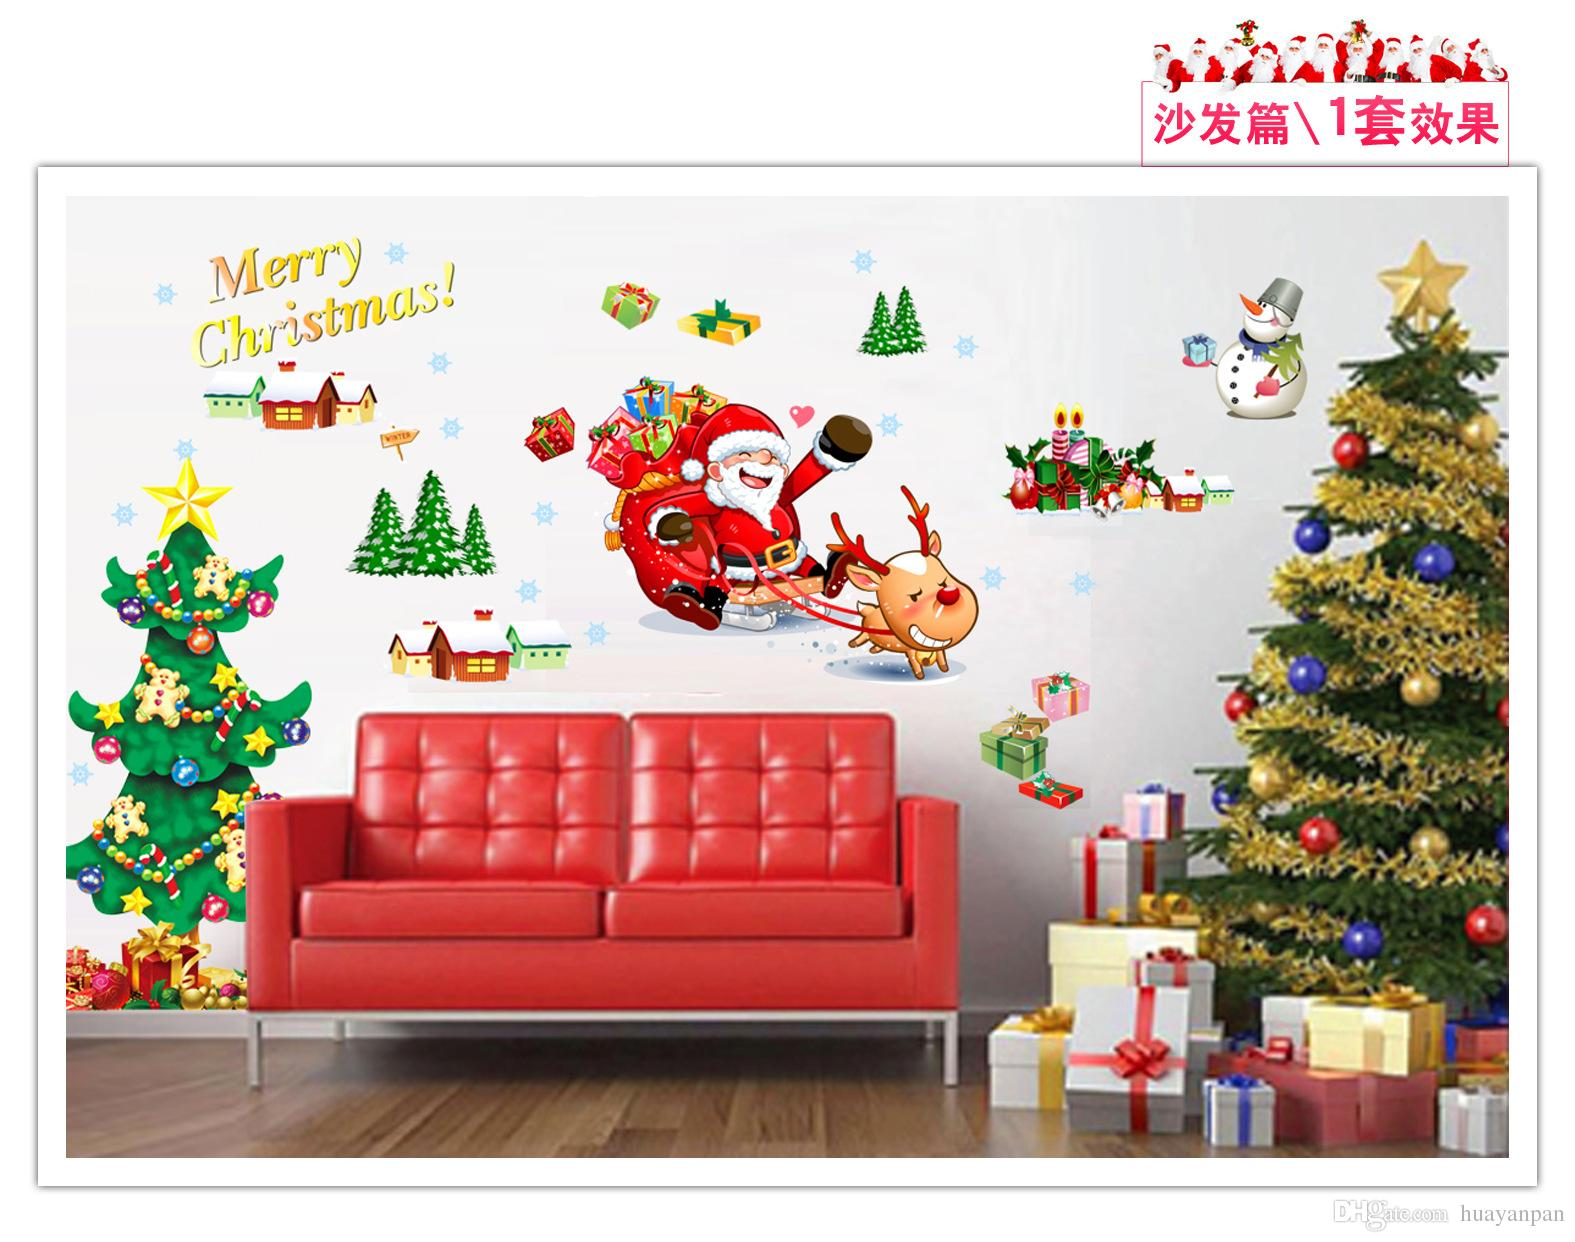 Hot Christmas Tree Wall Sticke The Santa Claus Wall Sticke - Christmas wall decals removable